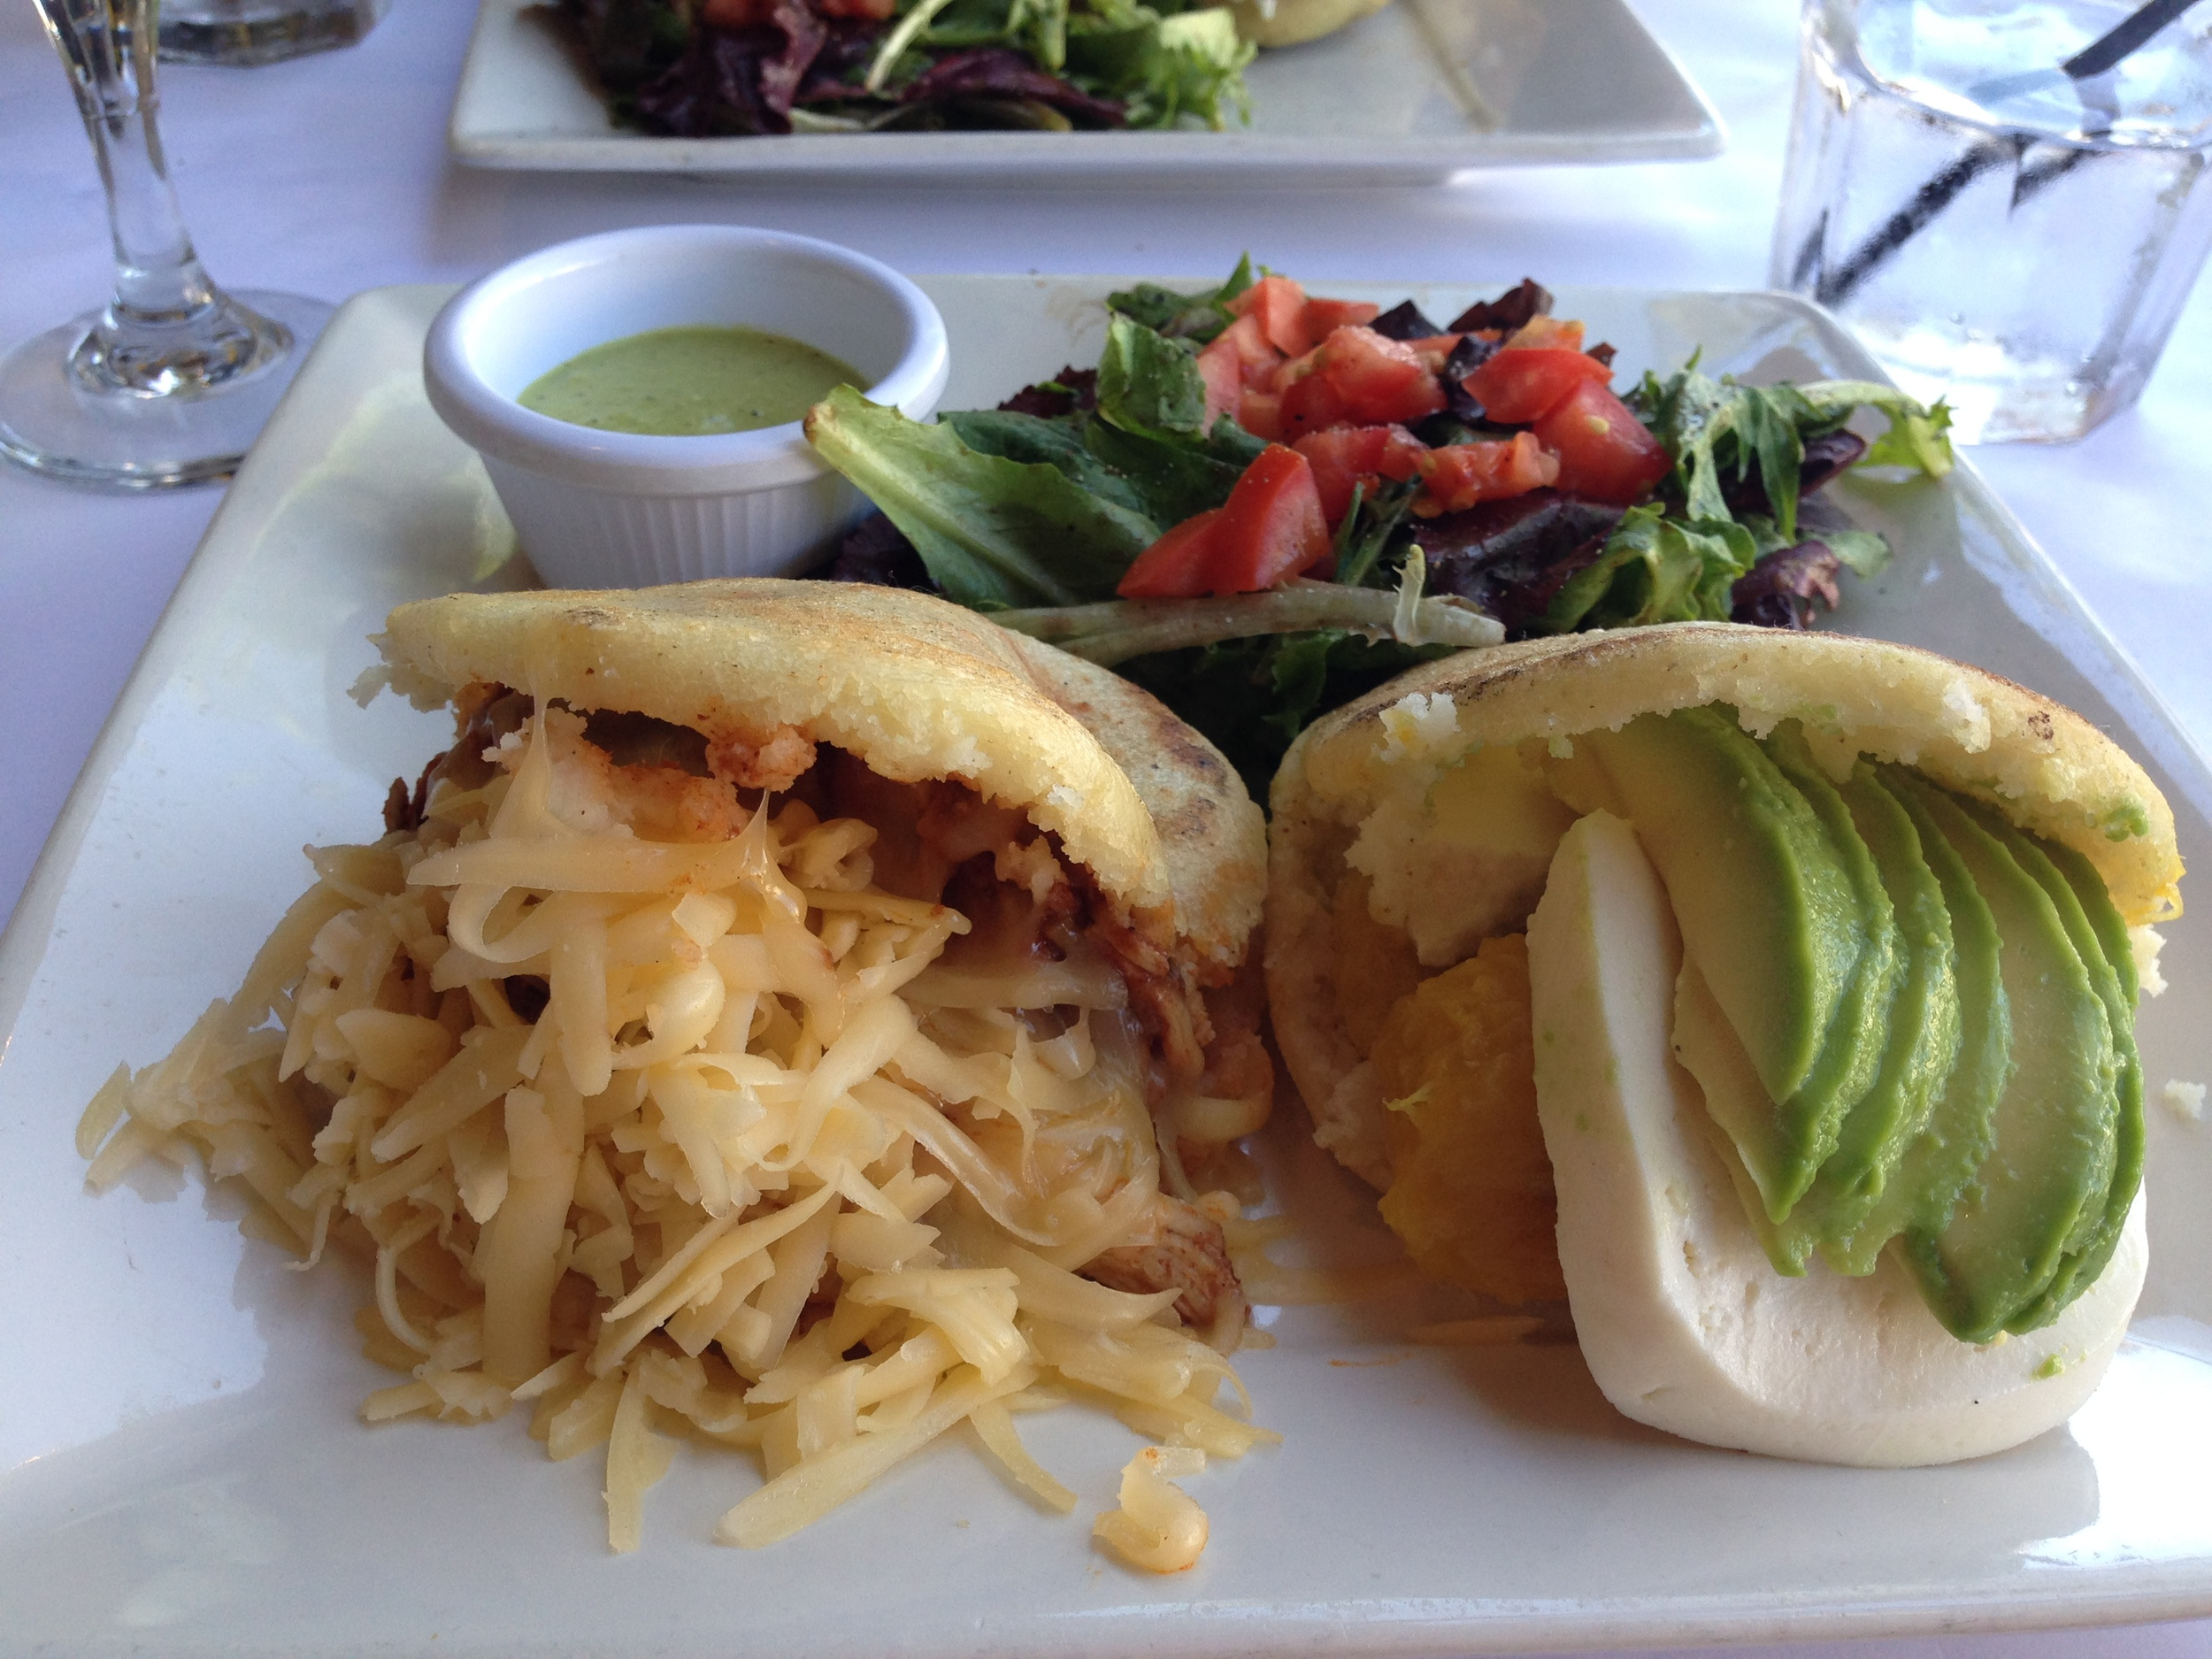 I think the one on the right is the Cami's Arepa ,and the one on the left is the Pelua. They're all good. You really can't go wrong.